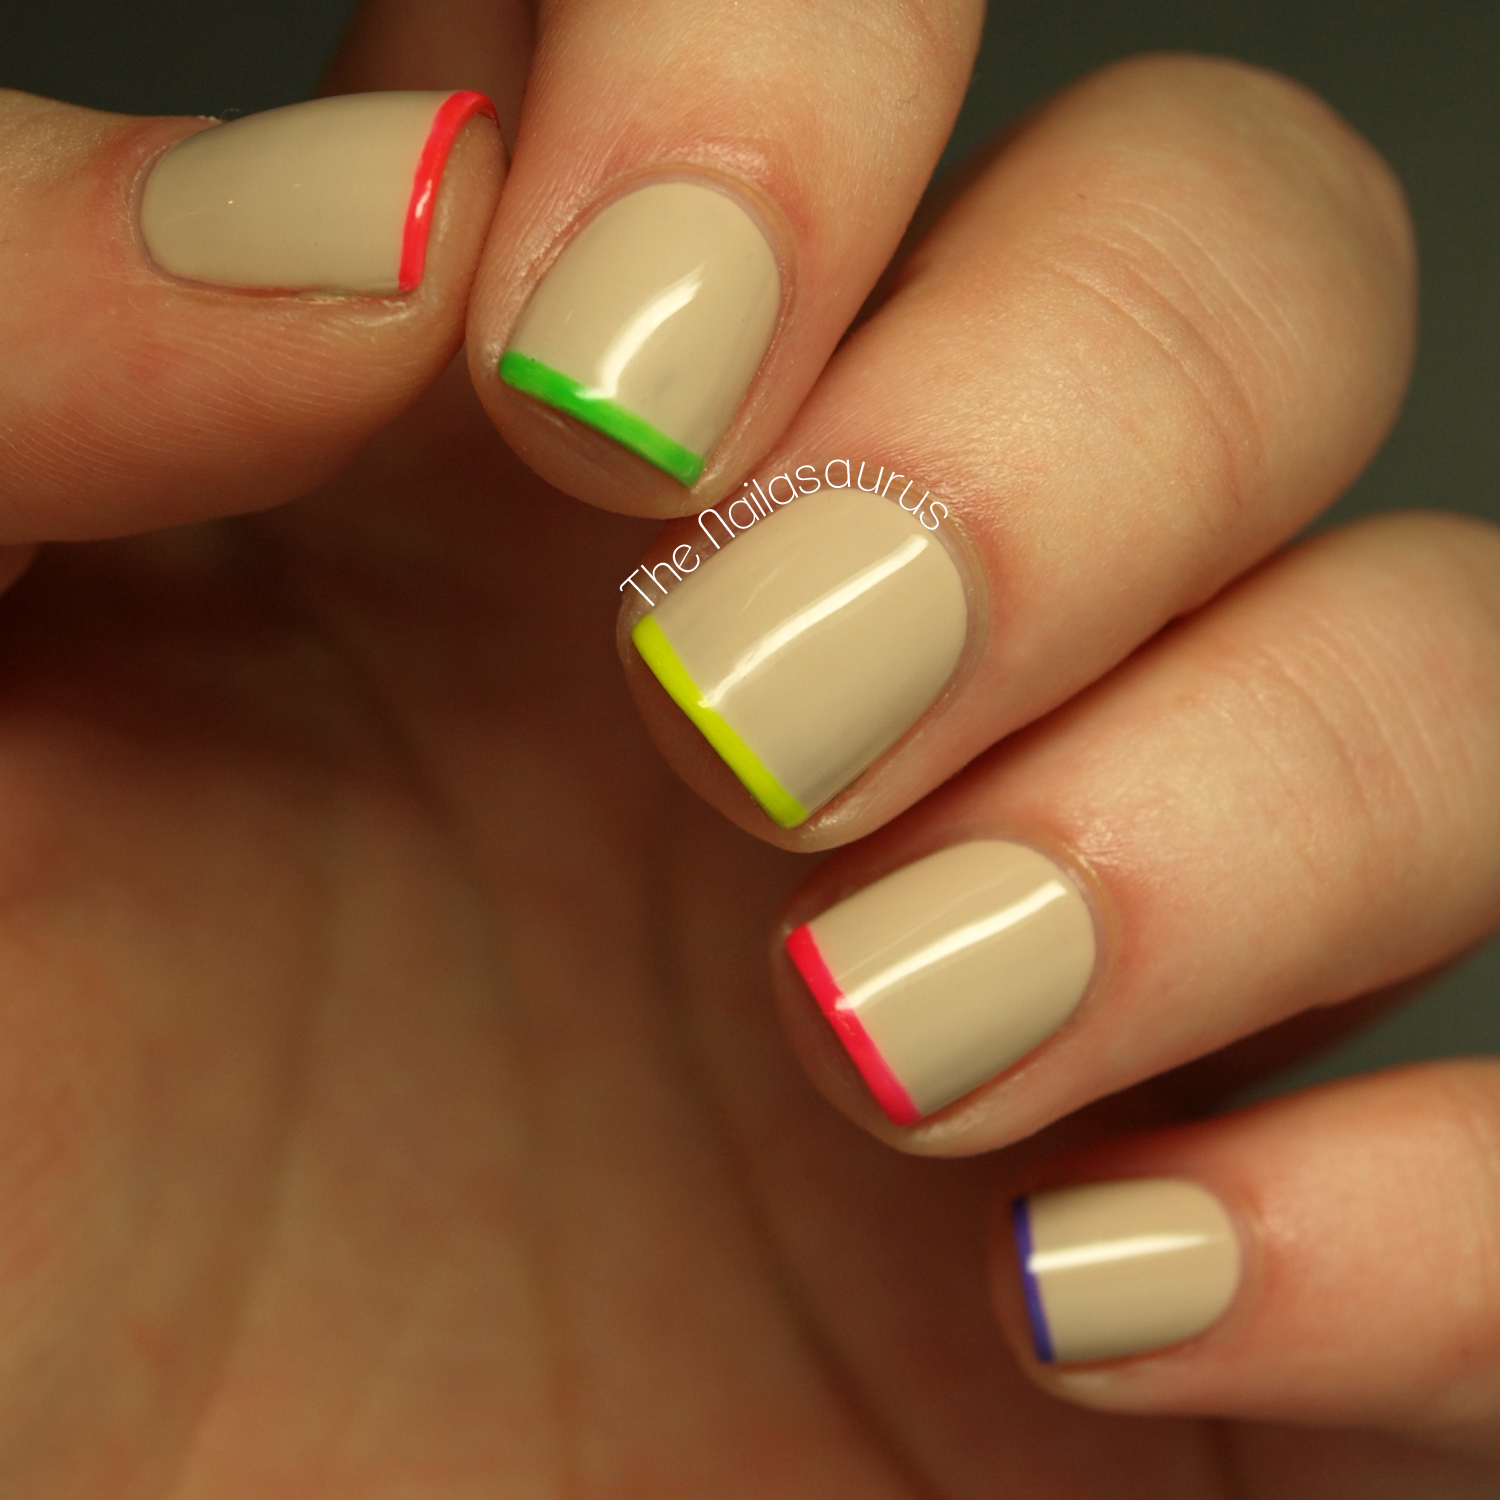 Nail Trends: Neon-Tipped Nails | more.com